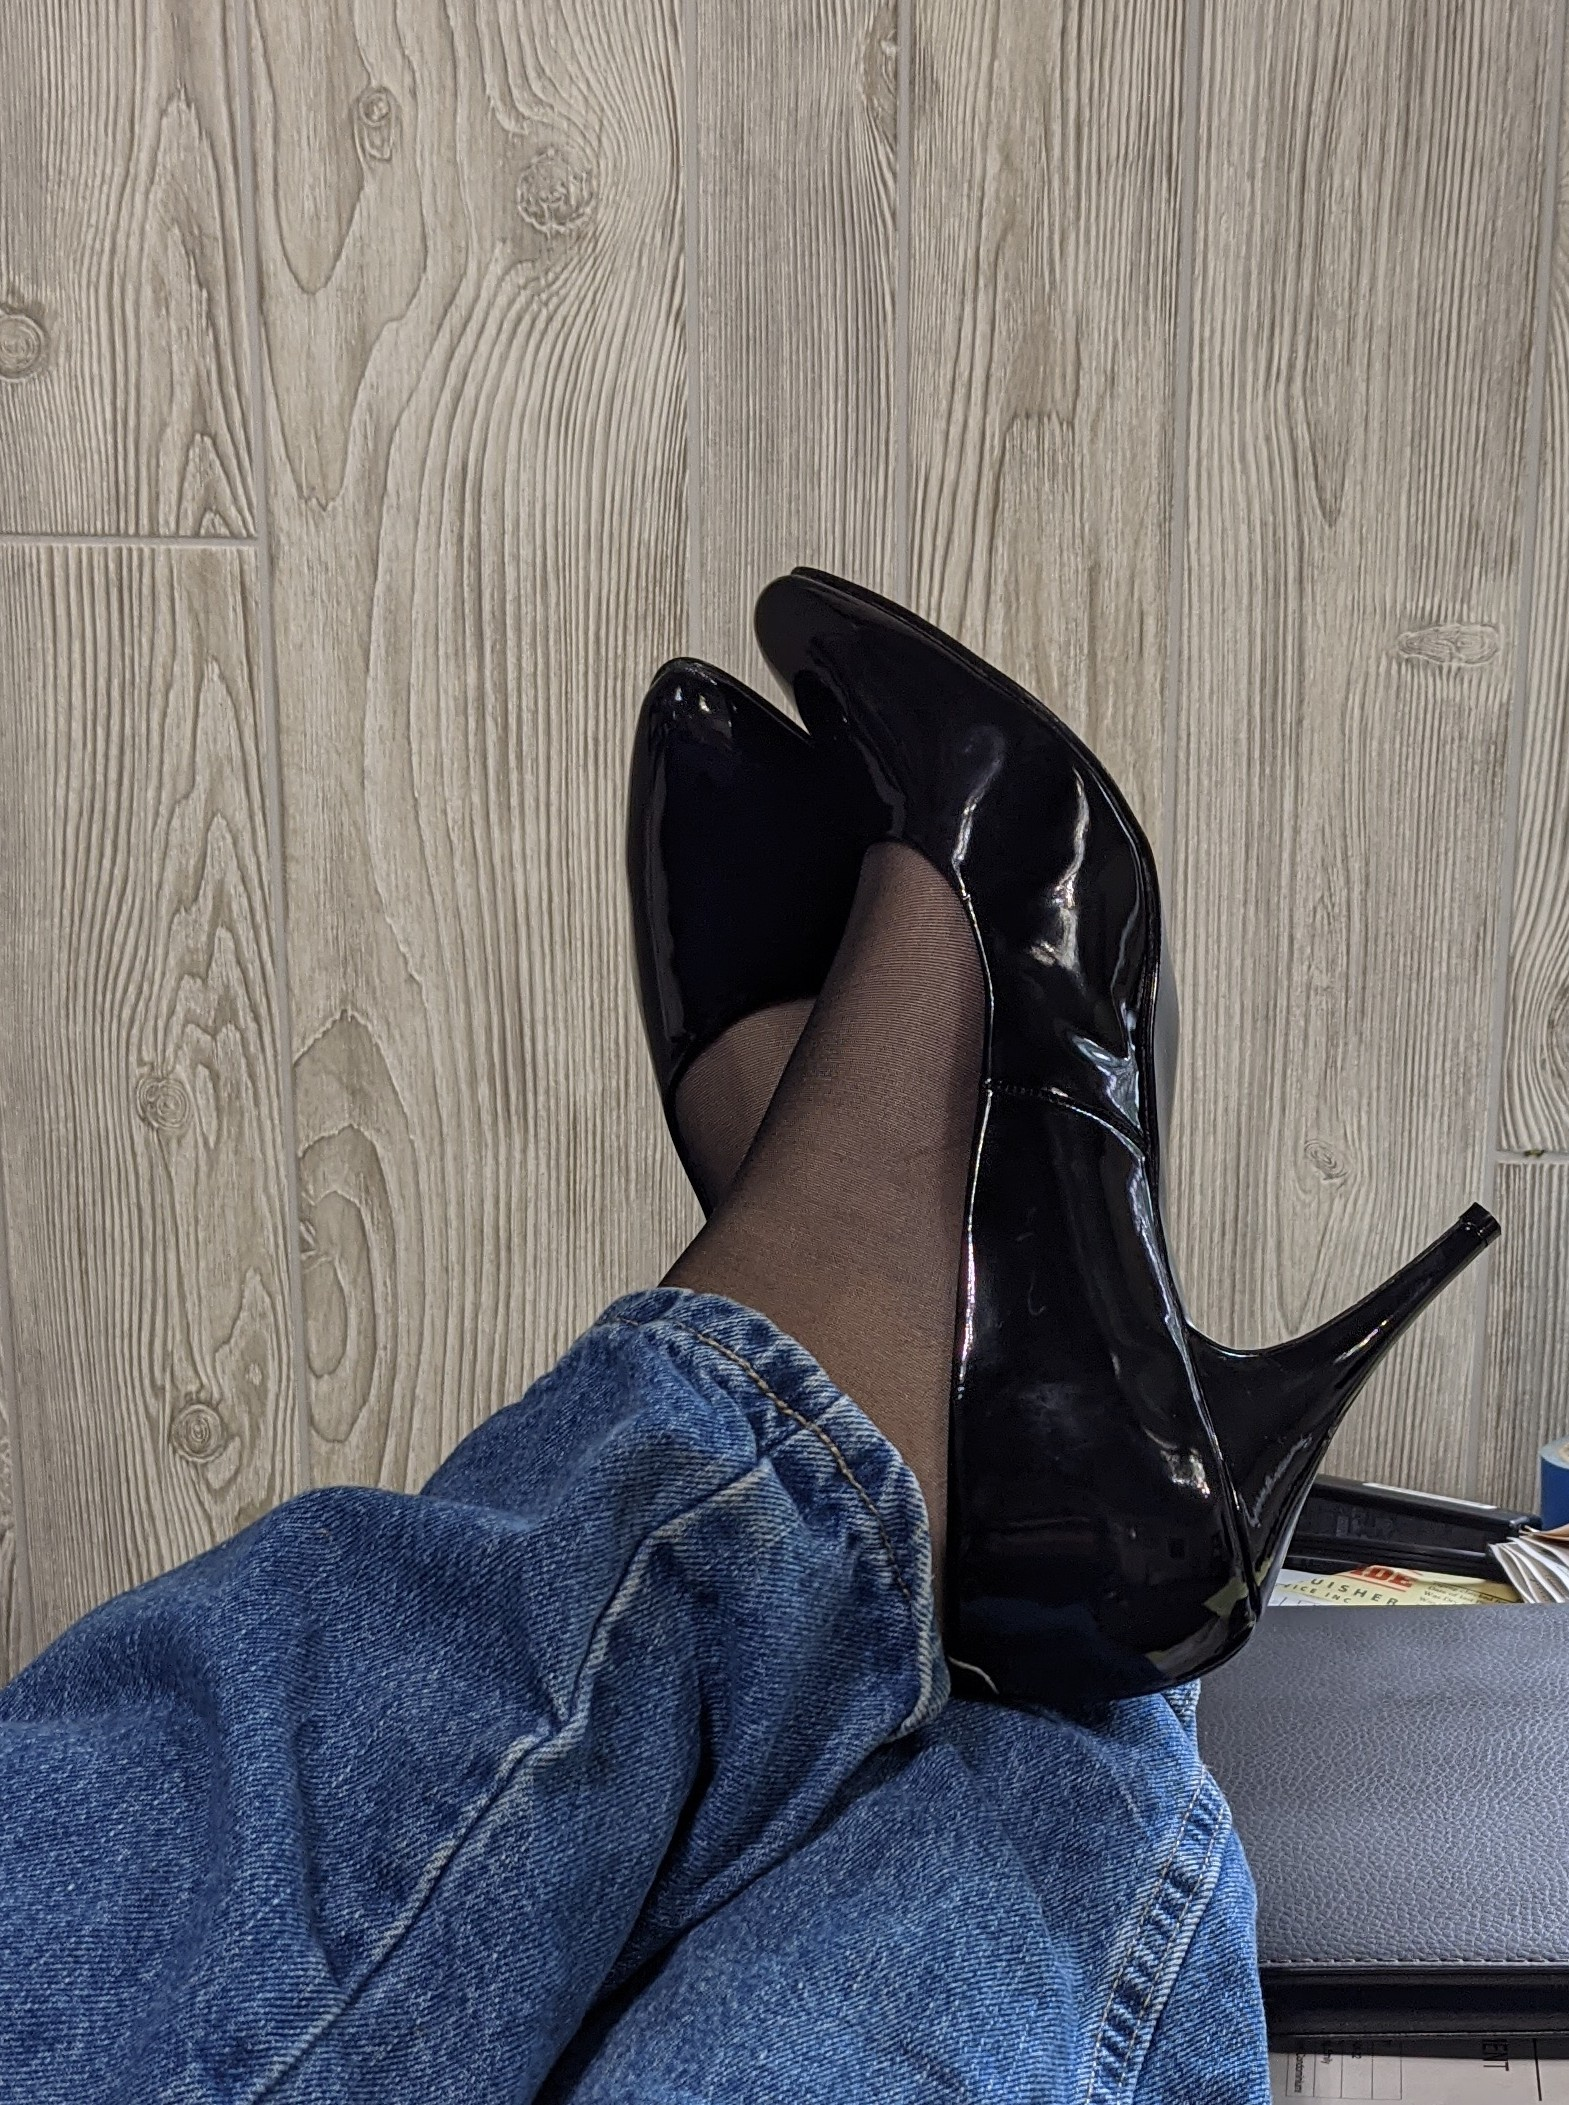 Office day today.-  Photo in topic Crossdressing by Mistressladyfriend